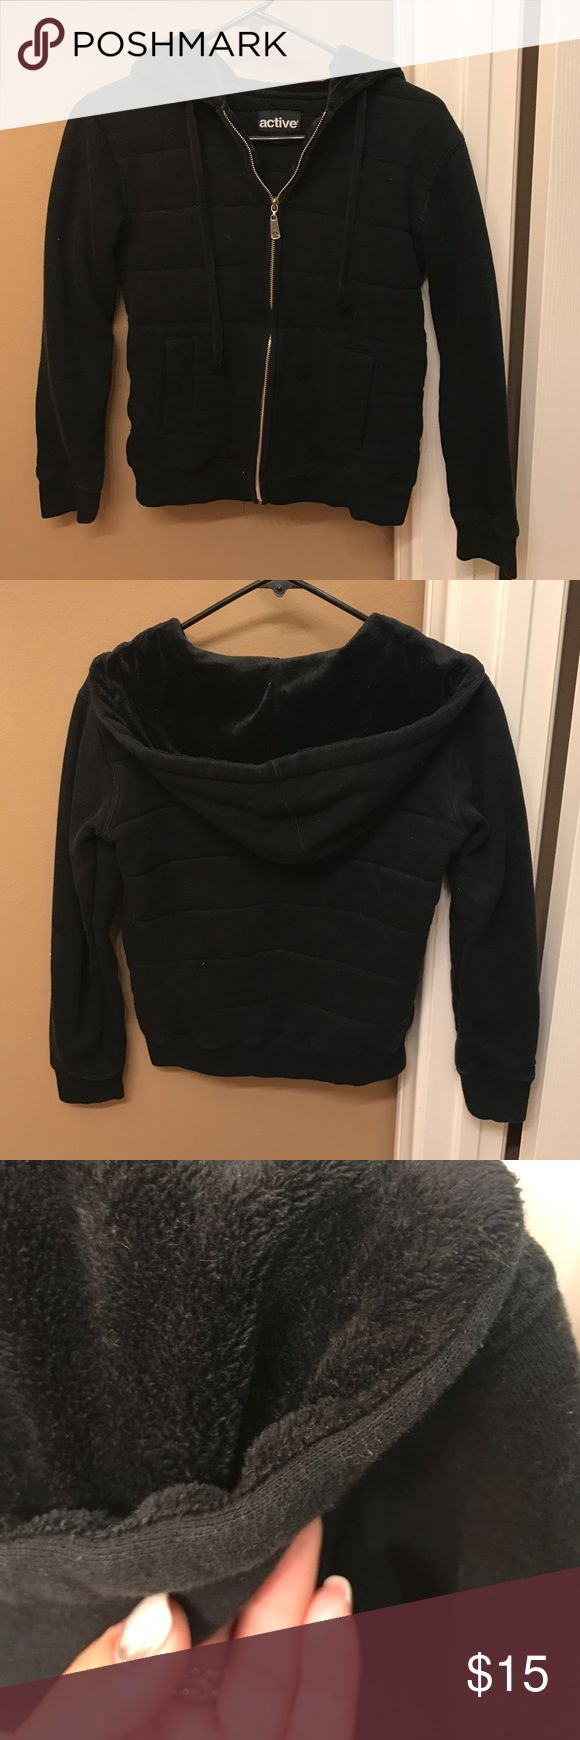 Black Active Zip Up Jacket Two different materials as pictured, the hood and inside contain a velvet like material and the outside is cotton. The zipper is fully functioning and has two side pockets! Great for the winter or fall when it gets a little chilly. Active Ride Shop Jackets & Coats